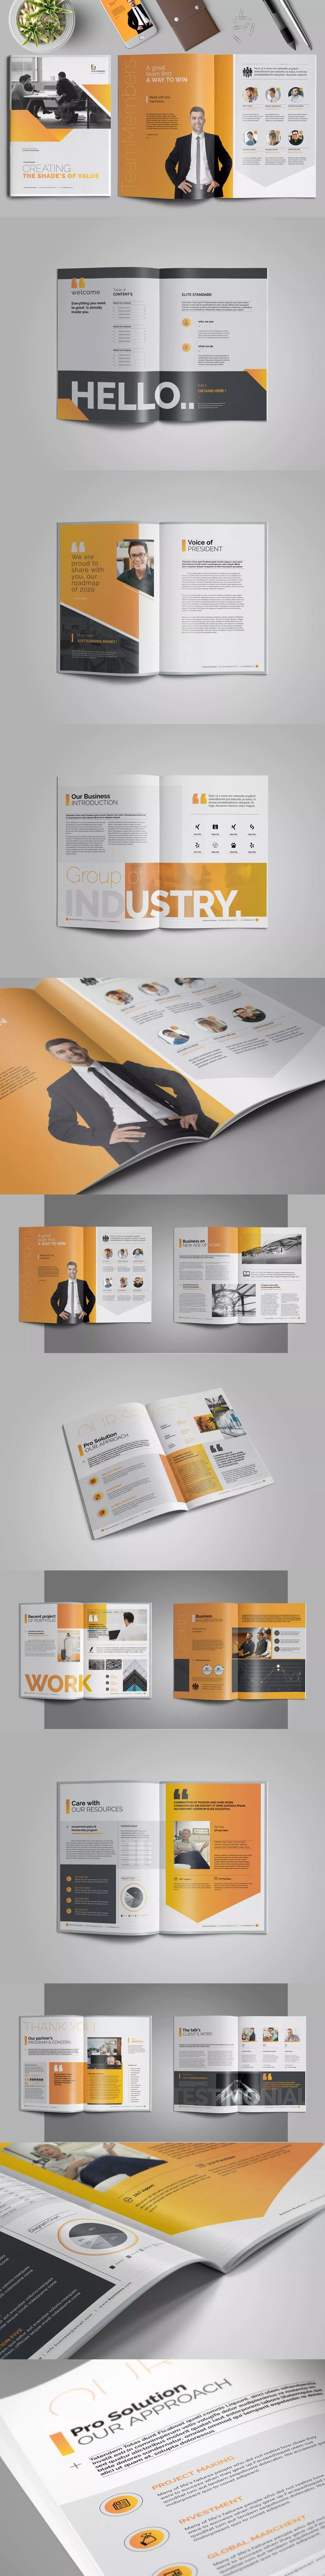 Business Brochure Template InDesign INDD - A4 and US Letter Size